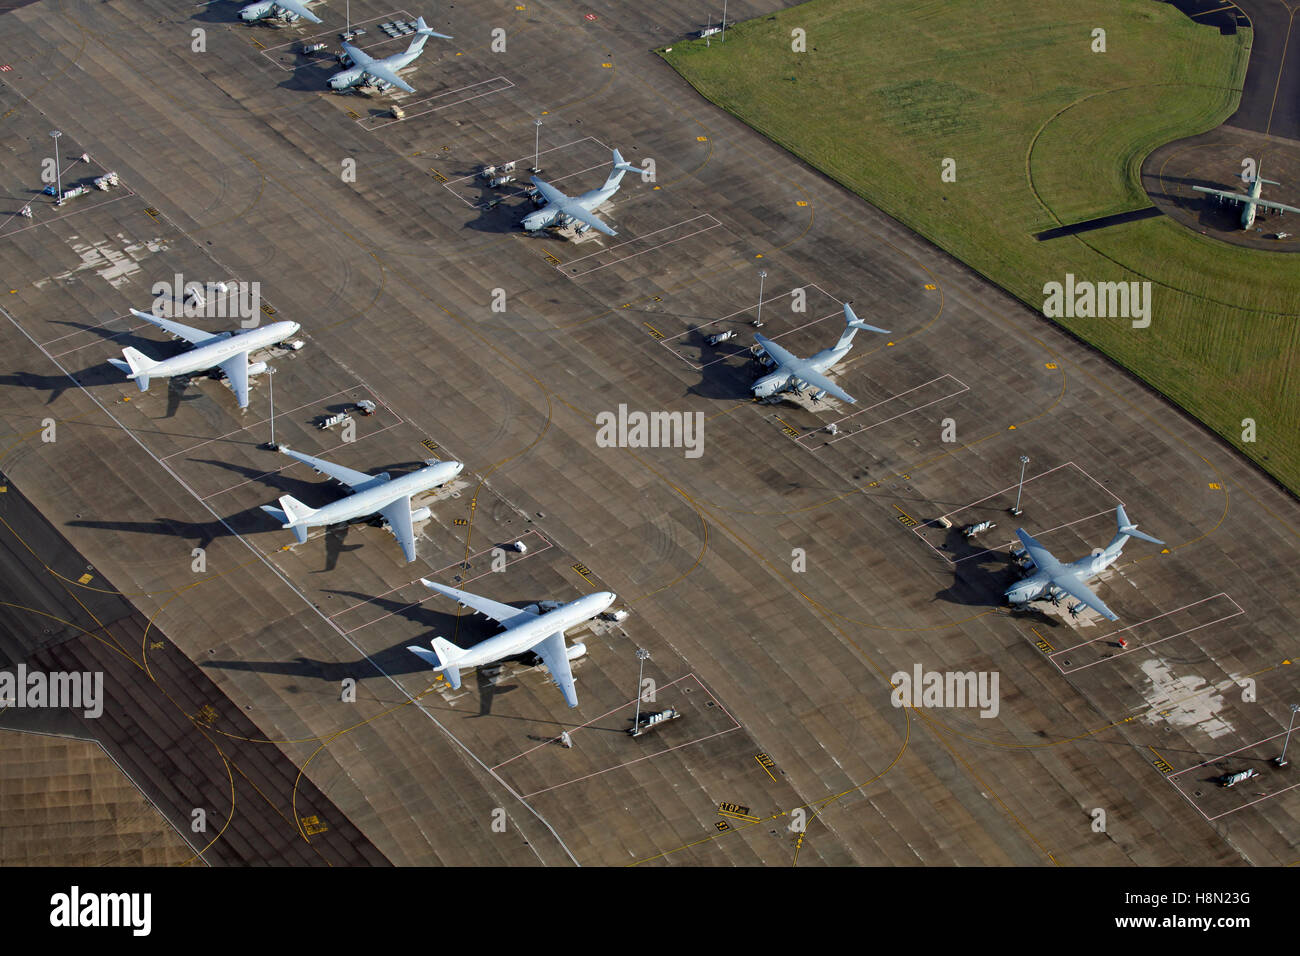 aerial view of RAF Brize Norton with 3 Airbus A330 Voyager & 5 A400M Atlas aircraft parked, Oxfordshire, UK - Stock Image